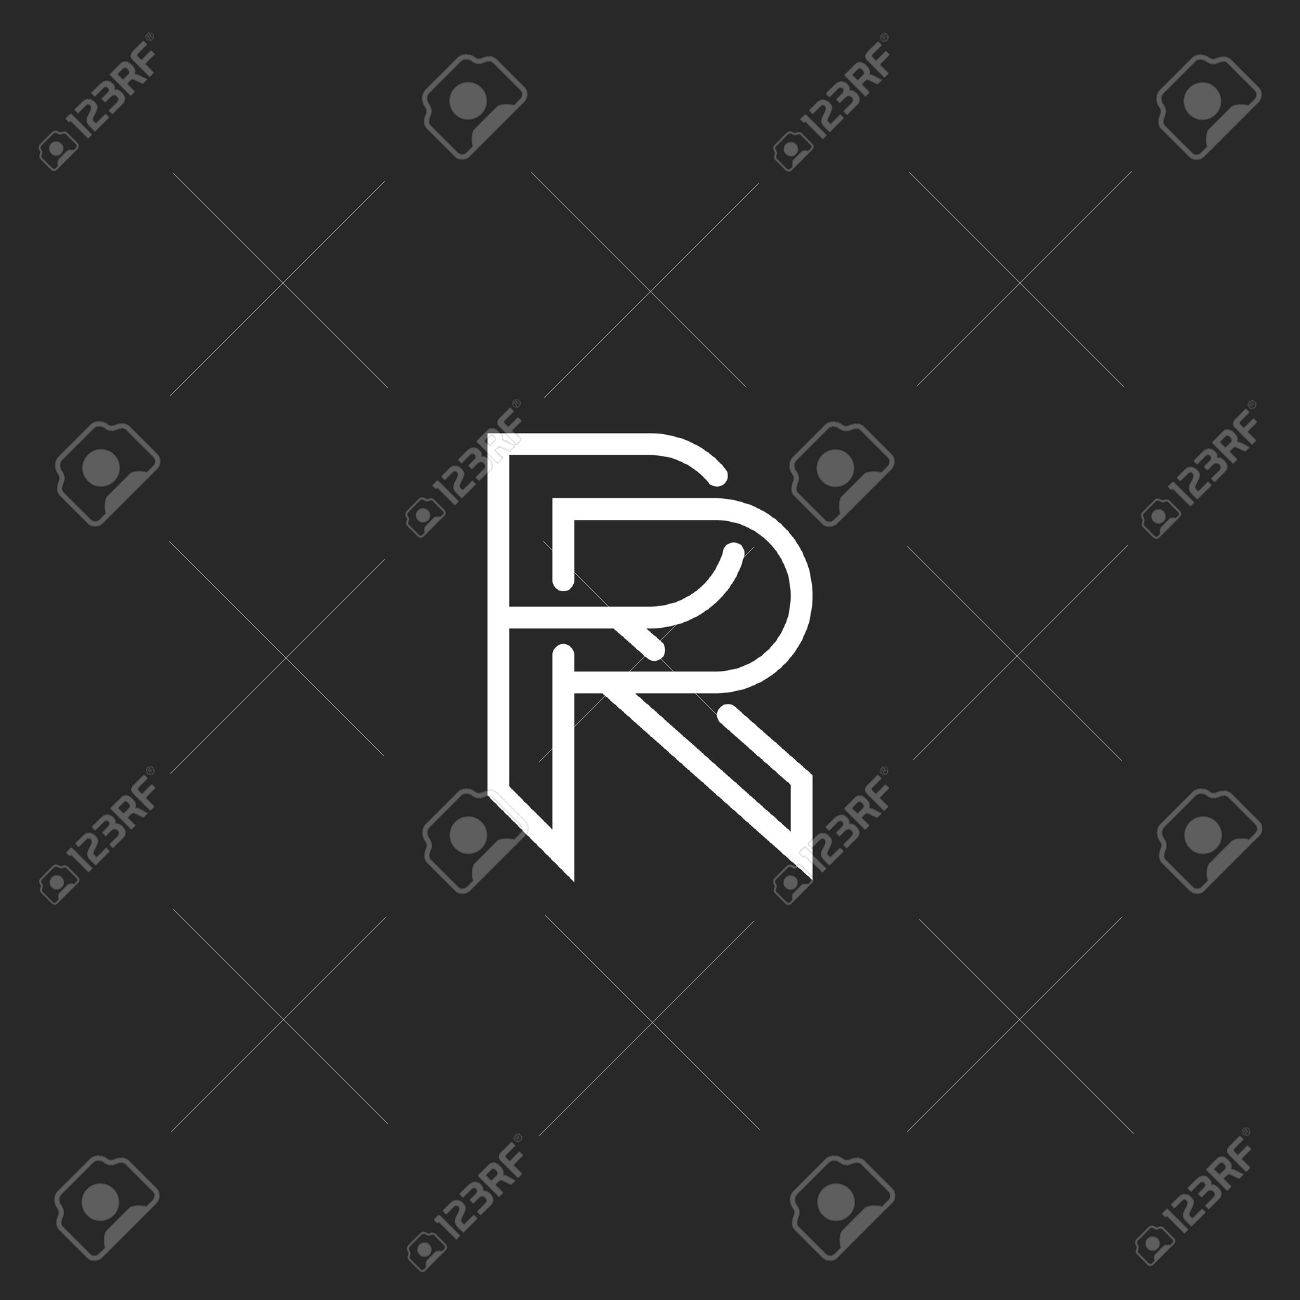 Letter R Logo Monogram, Mockup Hipster Black And White Design ...